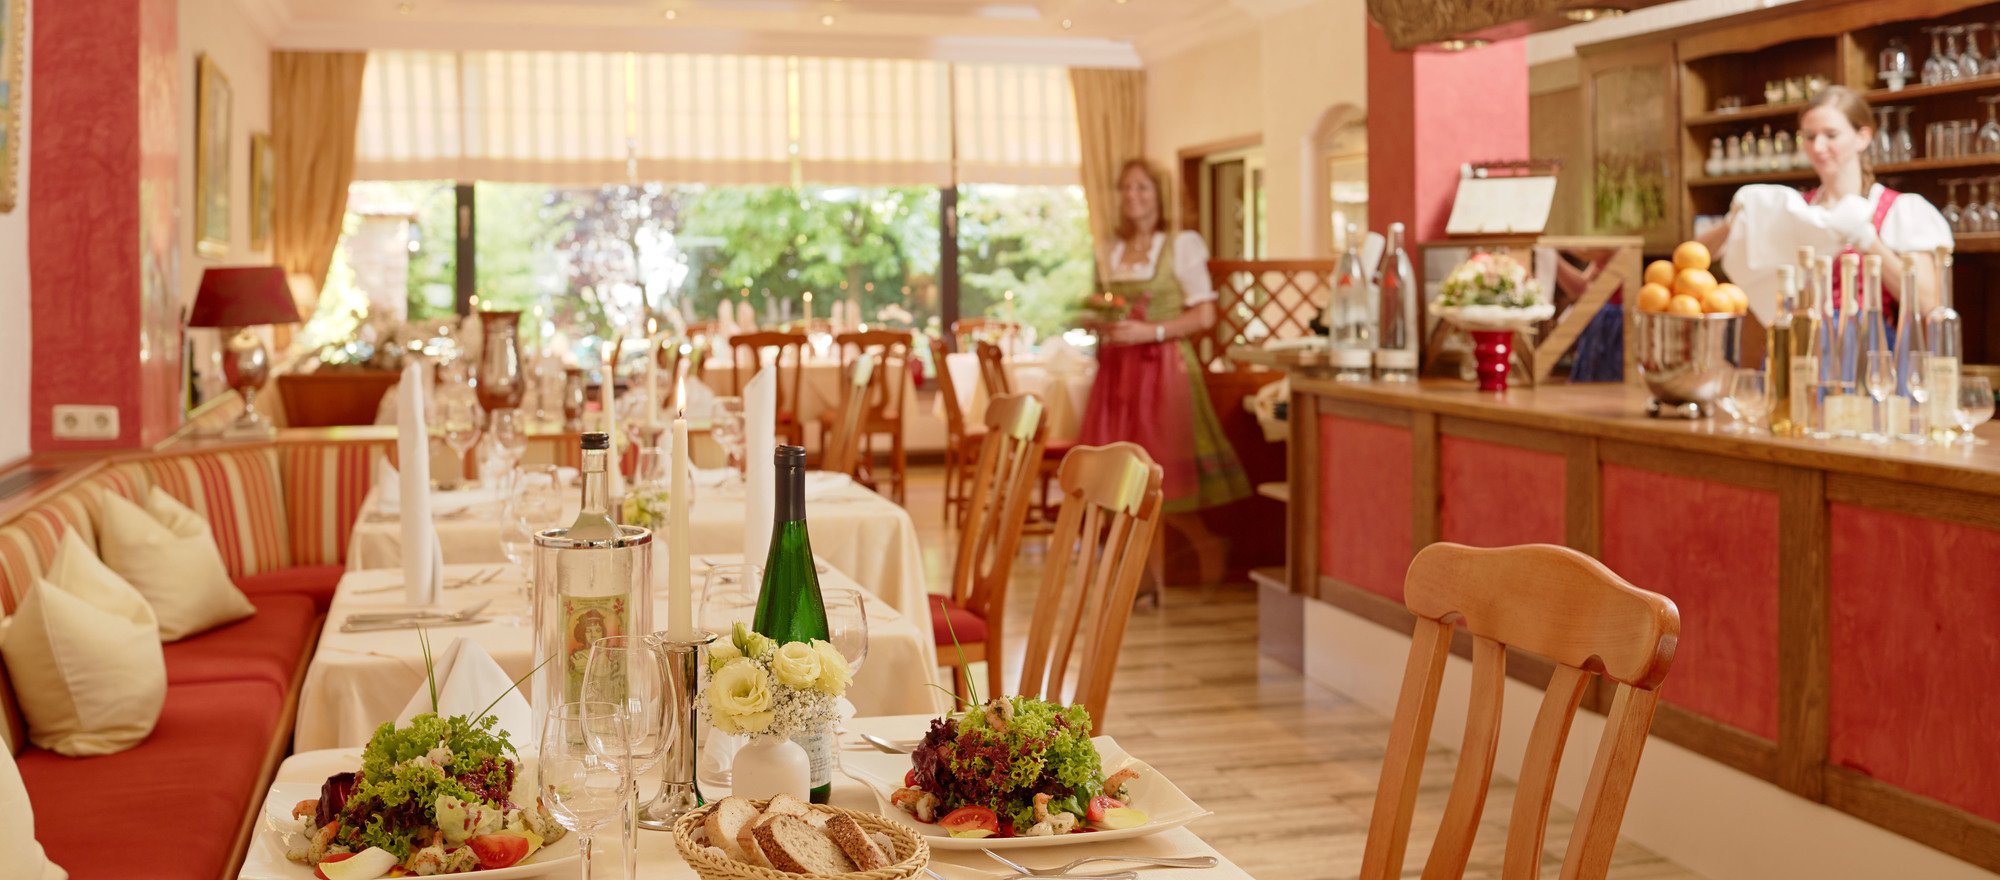 The restaurant of the 3-star-superior hotel Ringhotel Boemers Moselland in Alf/Mosel features seasonal and regional dishes